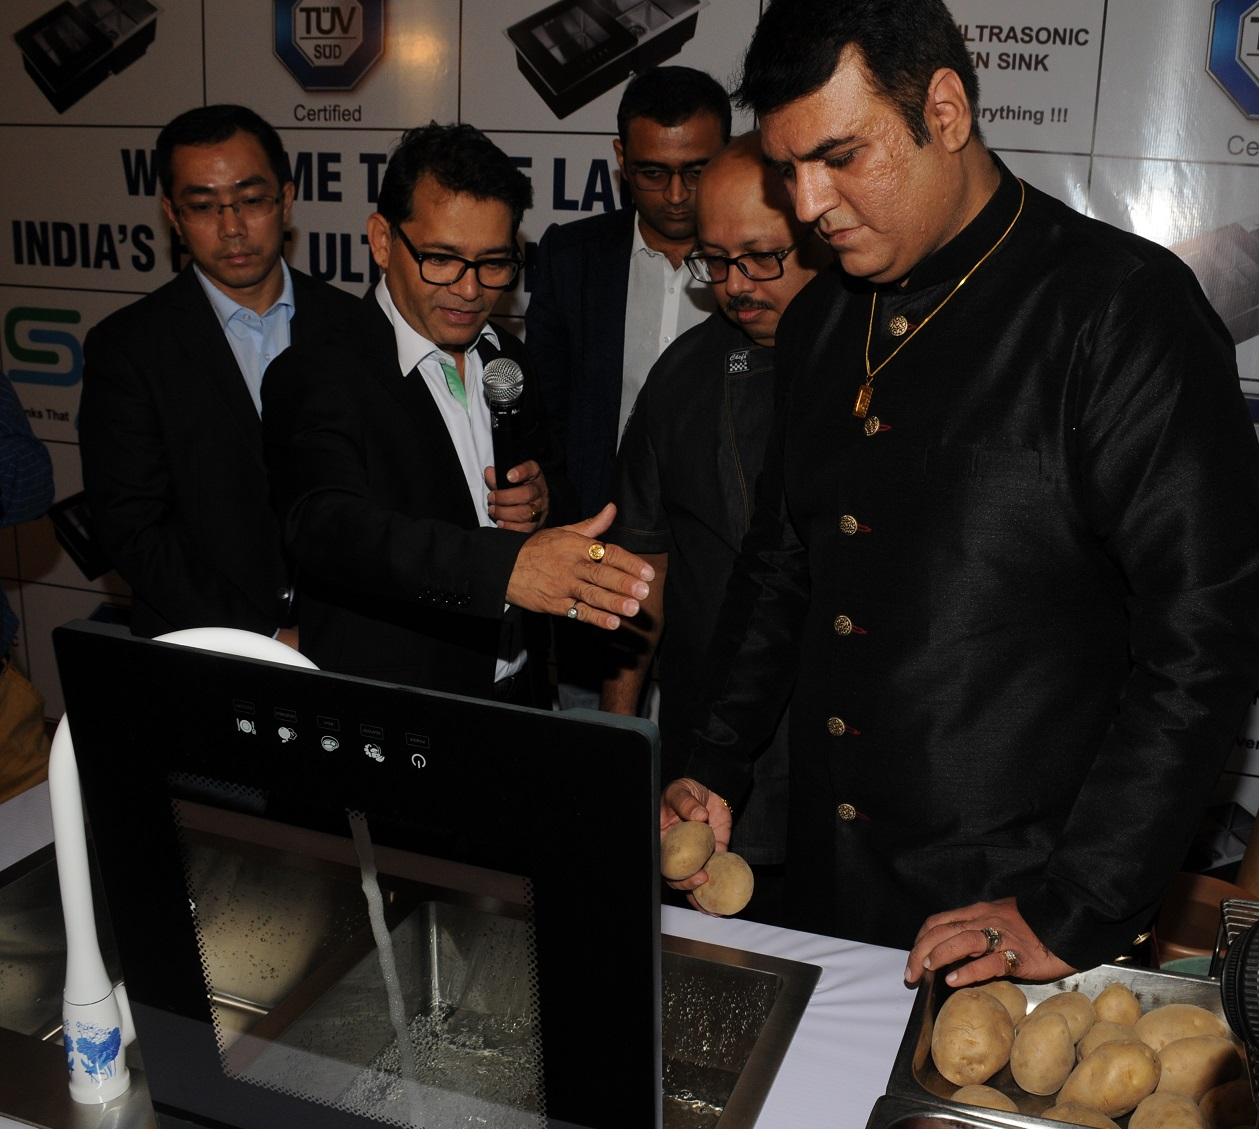 Sayo Ultrasonic Kitchen Sink Launched For First Time In India Pesticides Circuit Schematic Diagram Celebrity Chef Kaviraj Khialini Said With The Increasing Health Consciousness Among People It Will Be A Boon Who Cherish Goodness Of